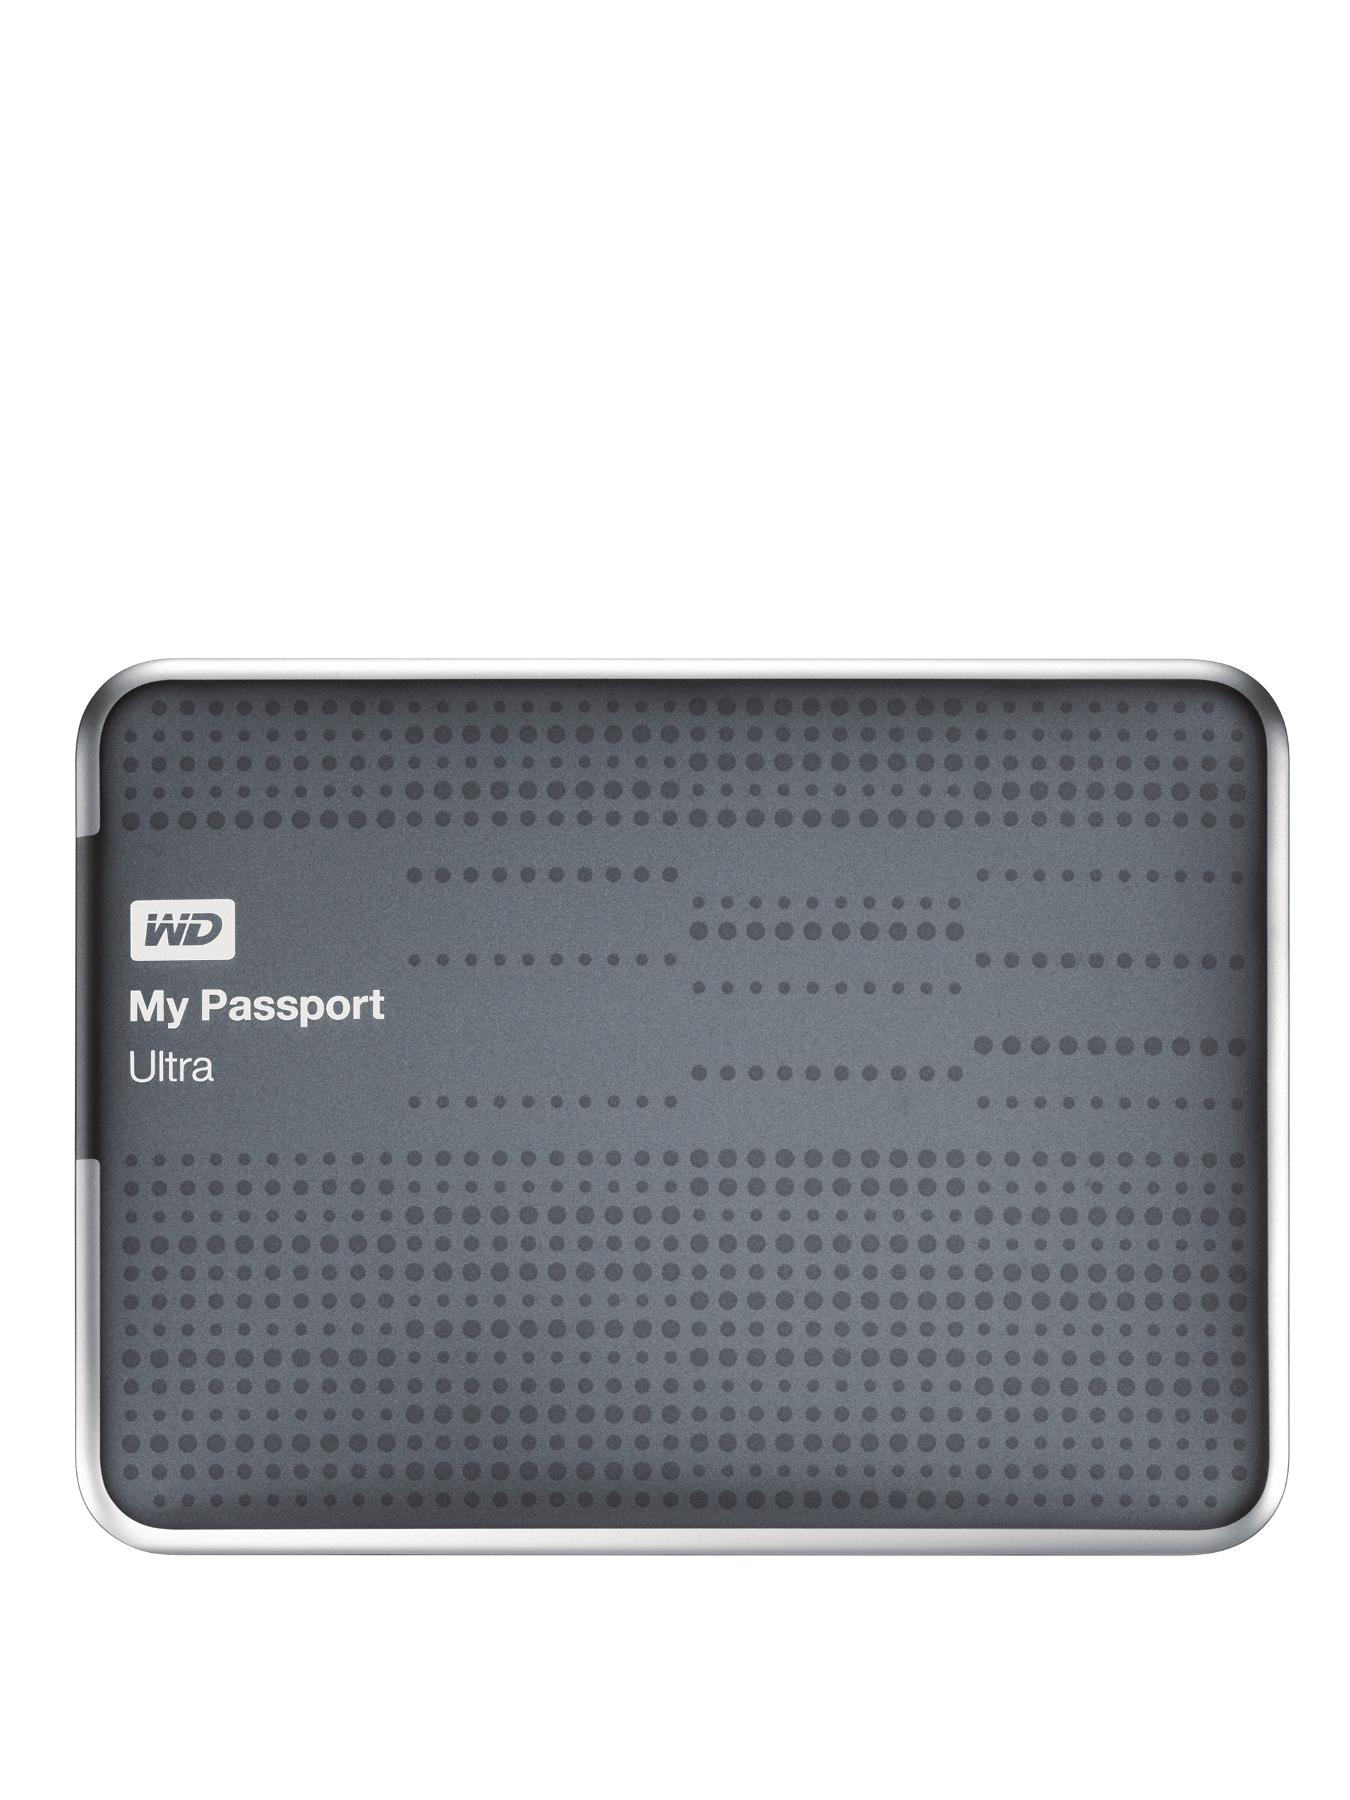 2Tb My Passport Ultra Portable Hard Drive - Silver